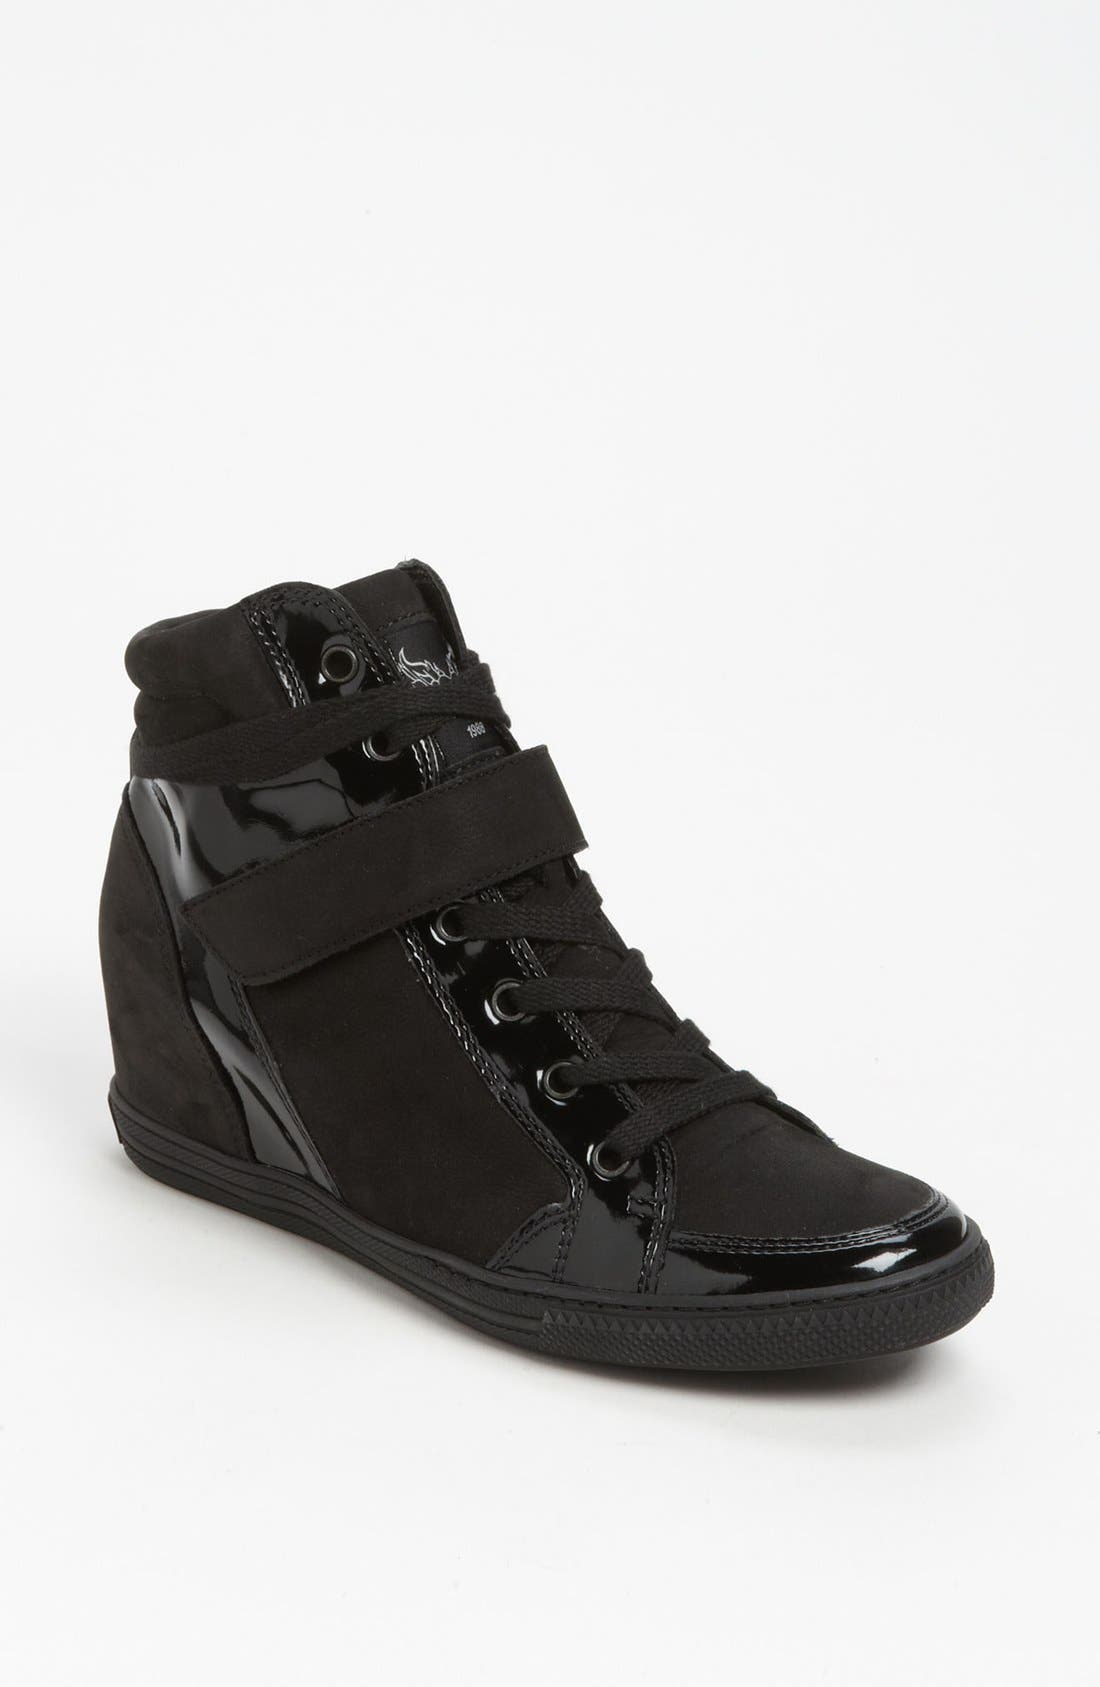 Alternate Image 1 Selected - Paul Green 'Paris' Hidden Wedge Sneaker